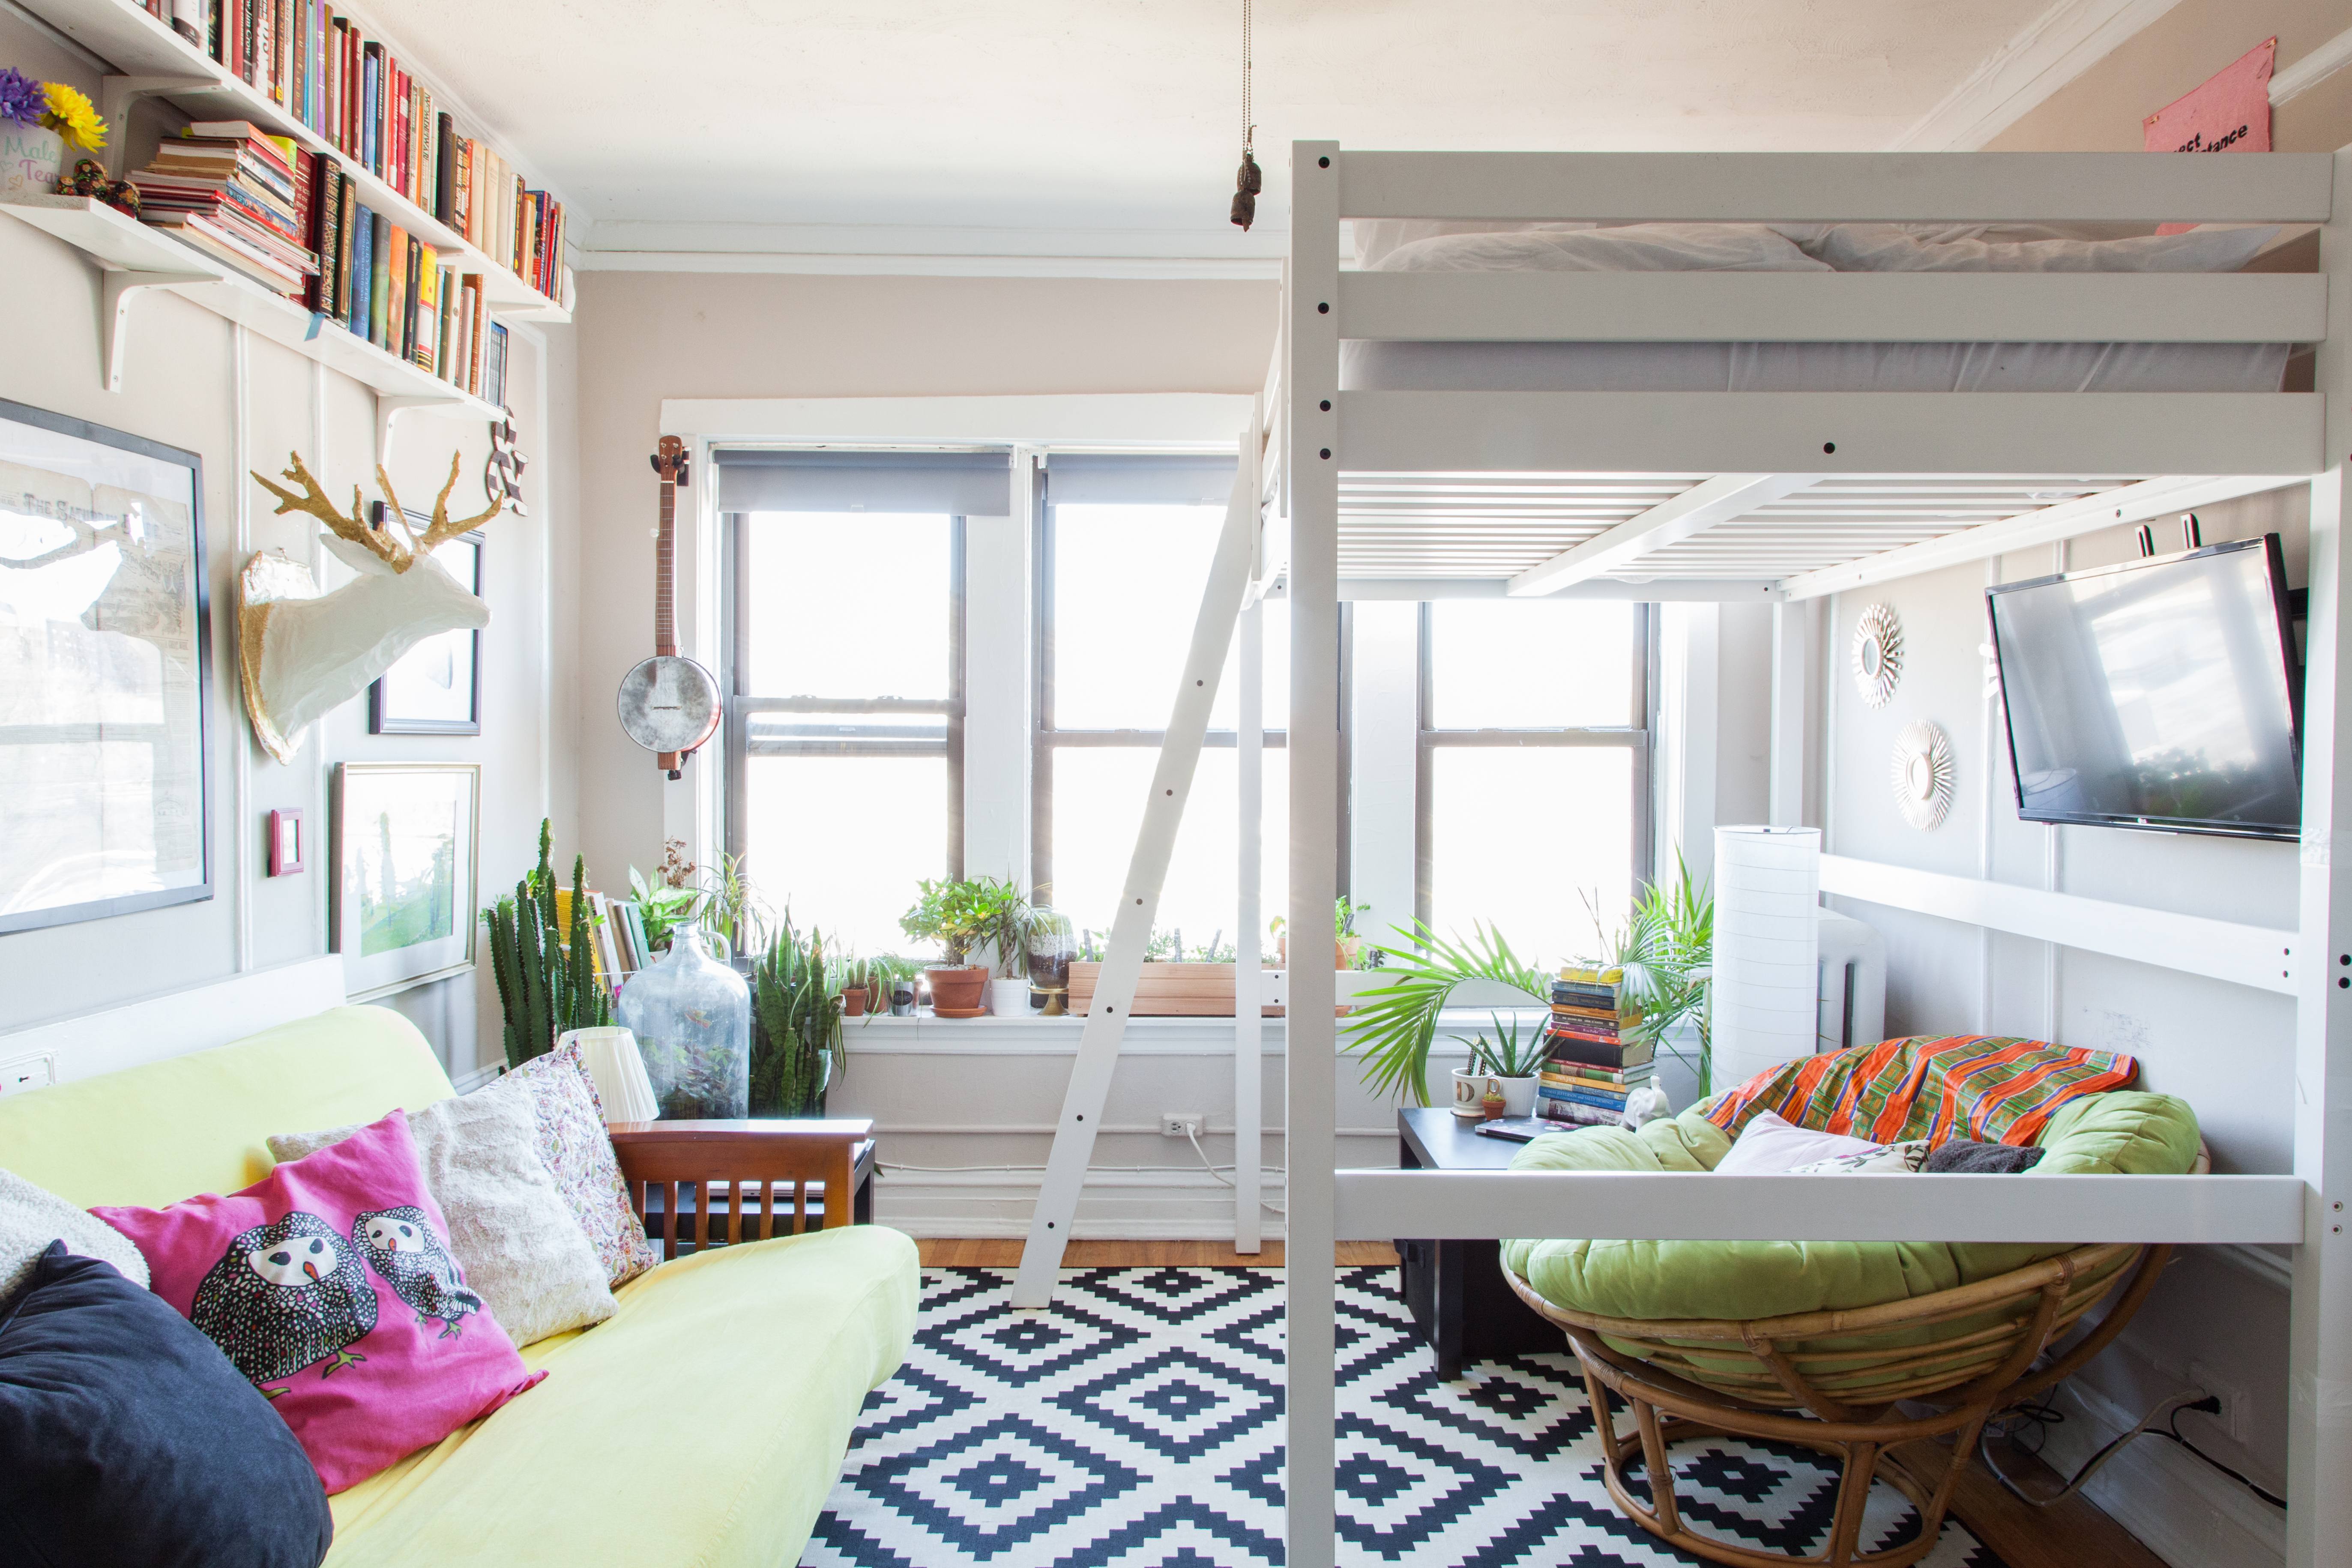 A Small Shared Space, an Inspiring Artist's Studio and More